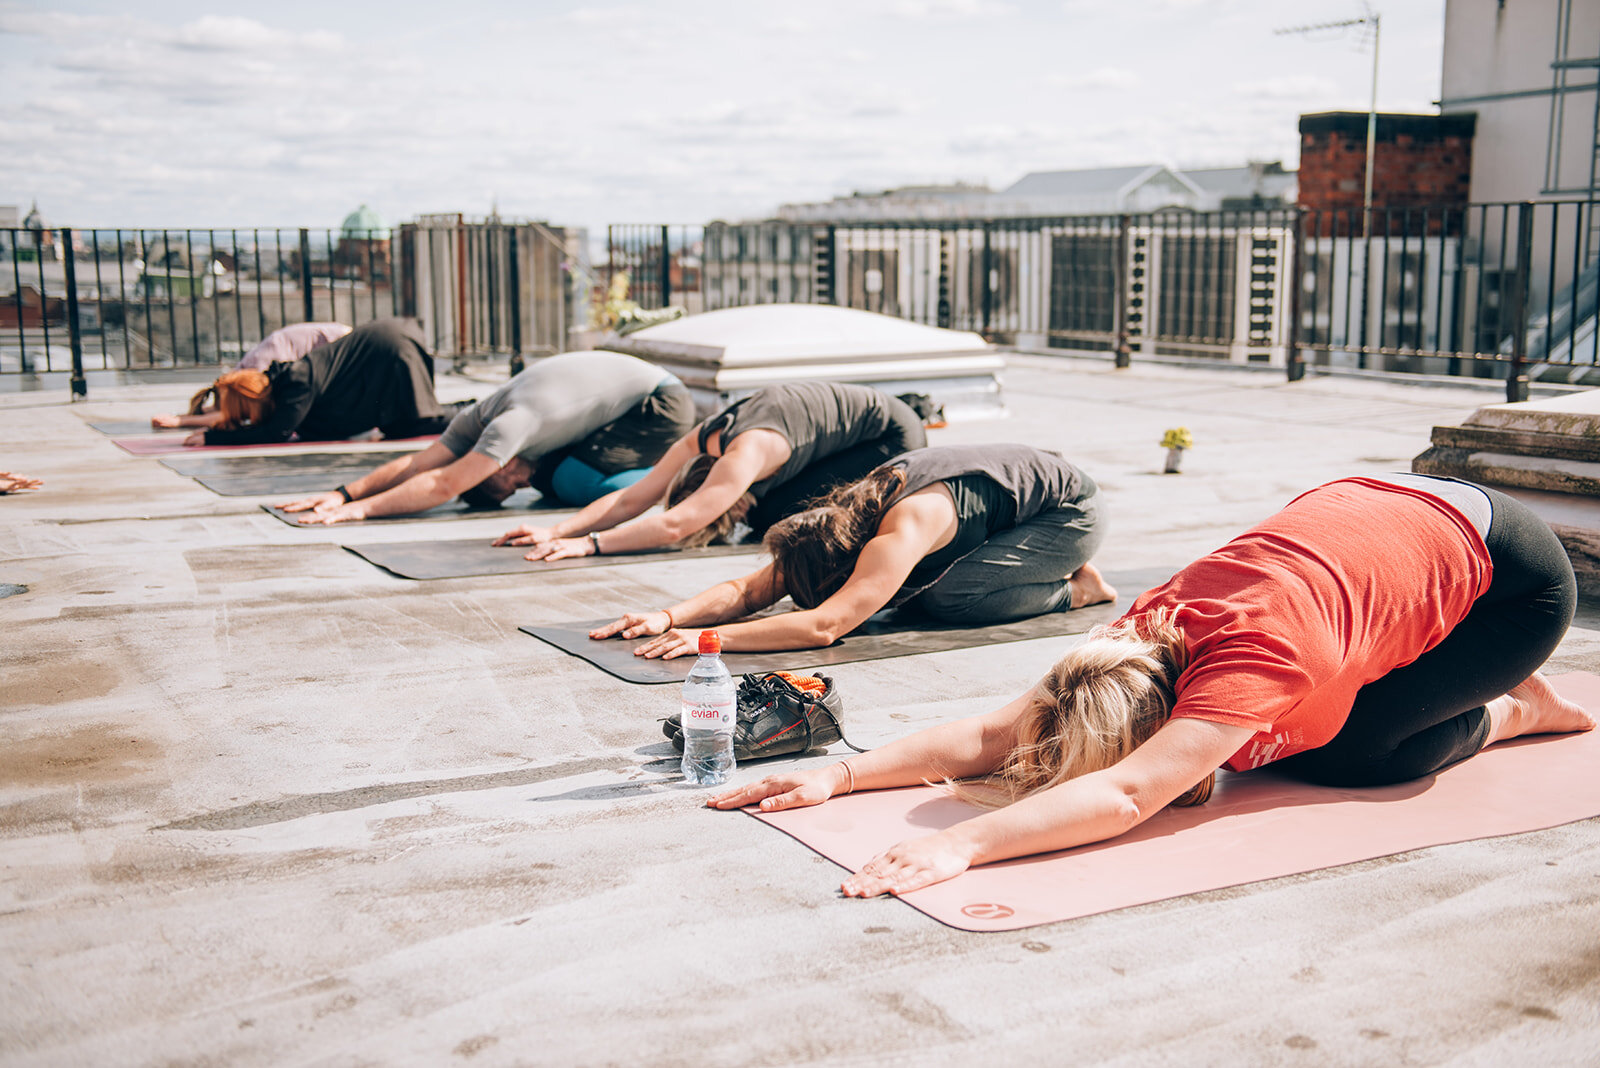 Let's get it Om! Festival rooftop yoga, raising funds for charity  SAMH .